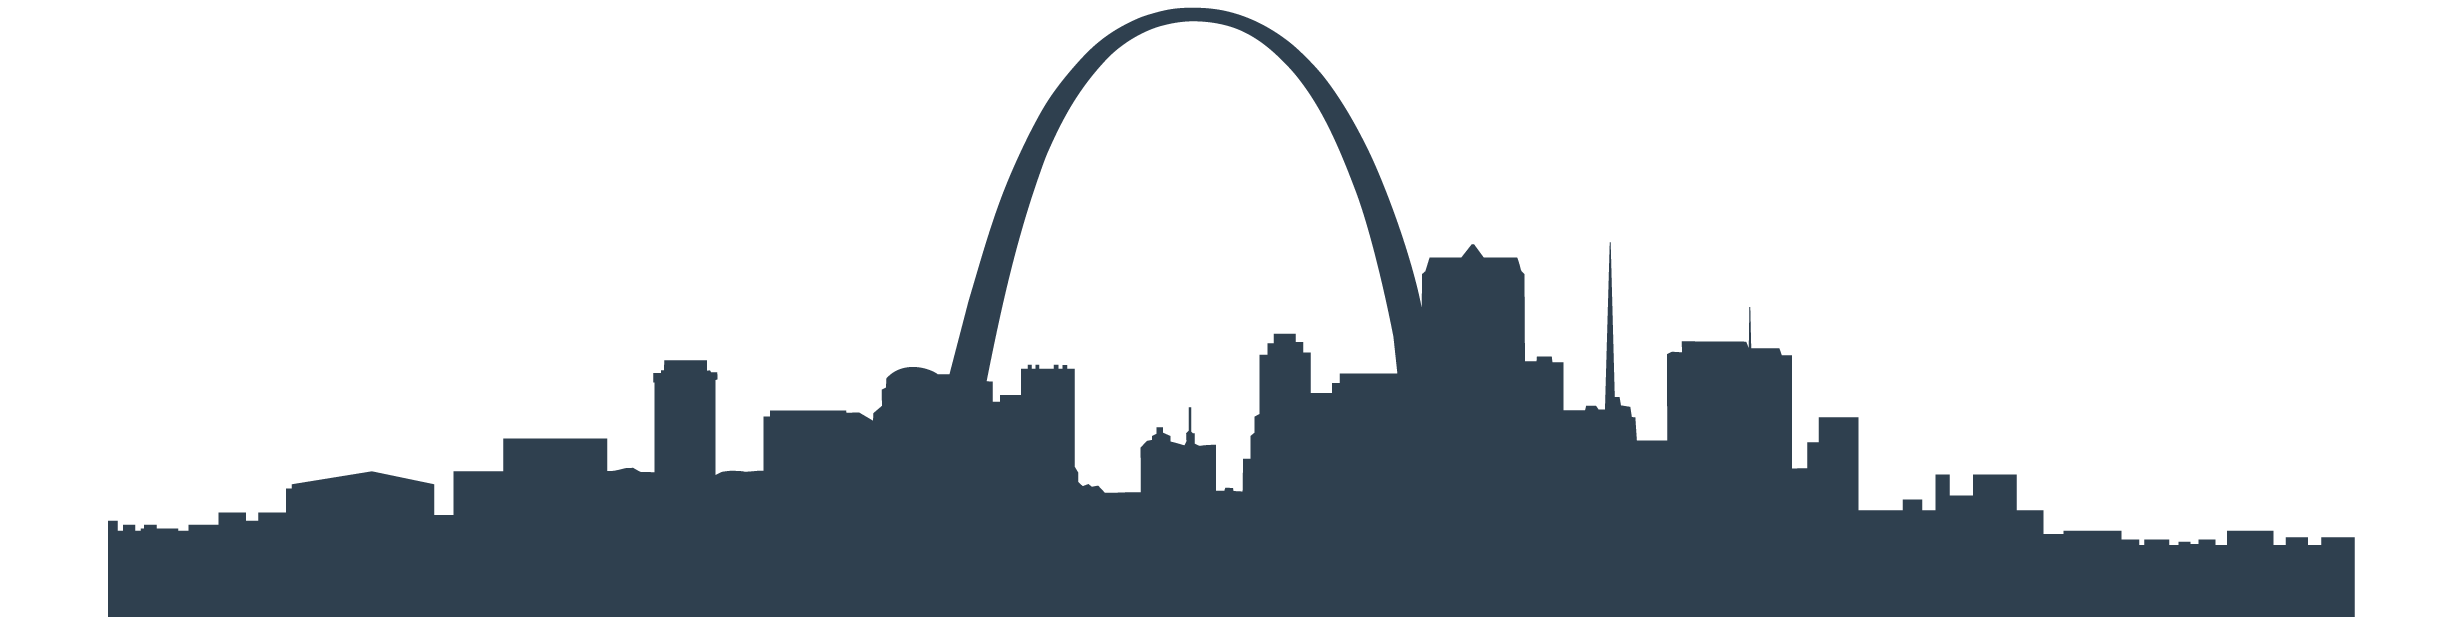 St Louis Skyline Vector